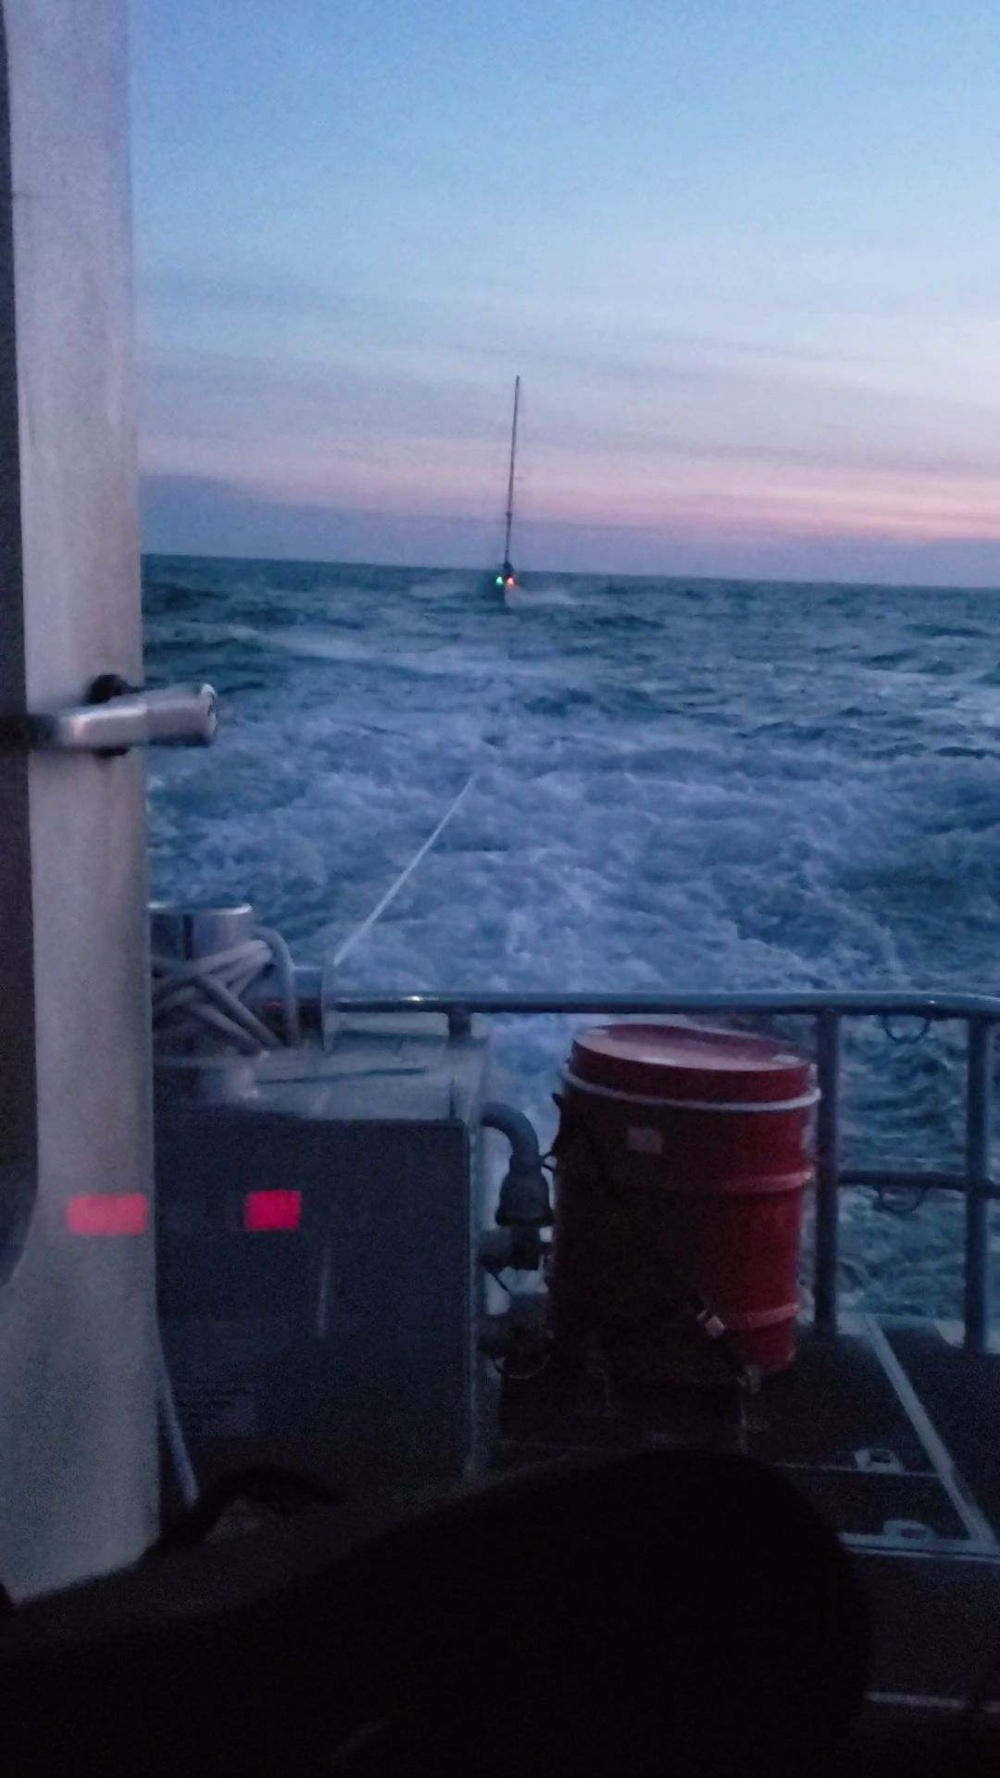 Coast Guard cleared shipping channel in Chesapeake of adrift sailboat before nightfall